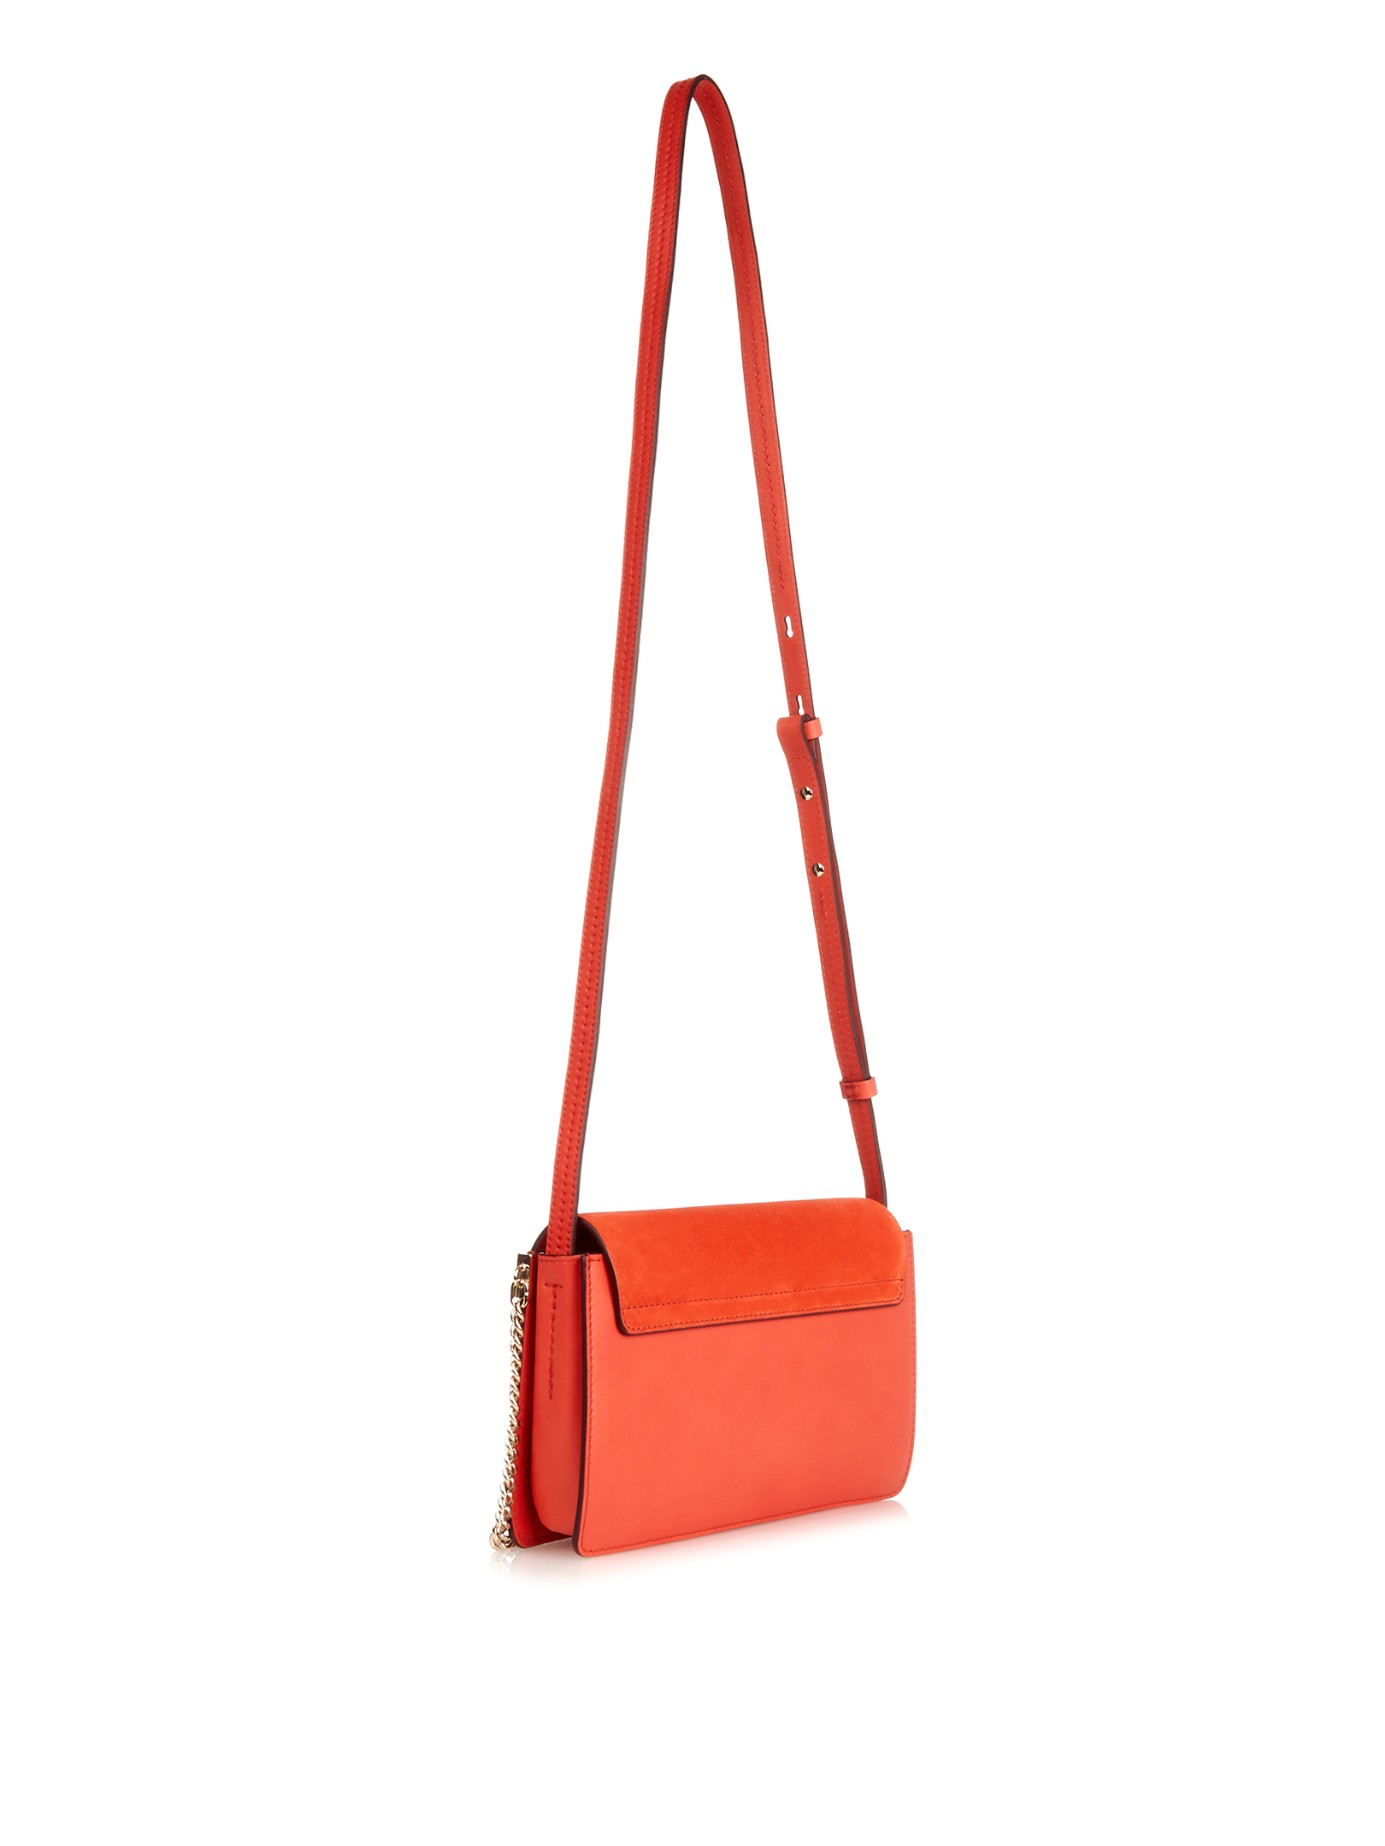 how to spot a fake chloe marcie bag - chloe mini faye crossbody bag, chloe designer handbags